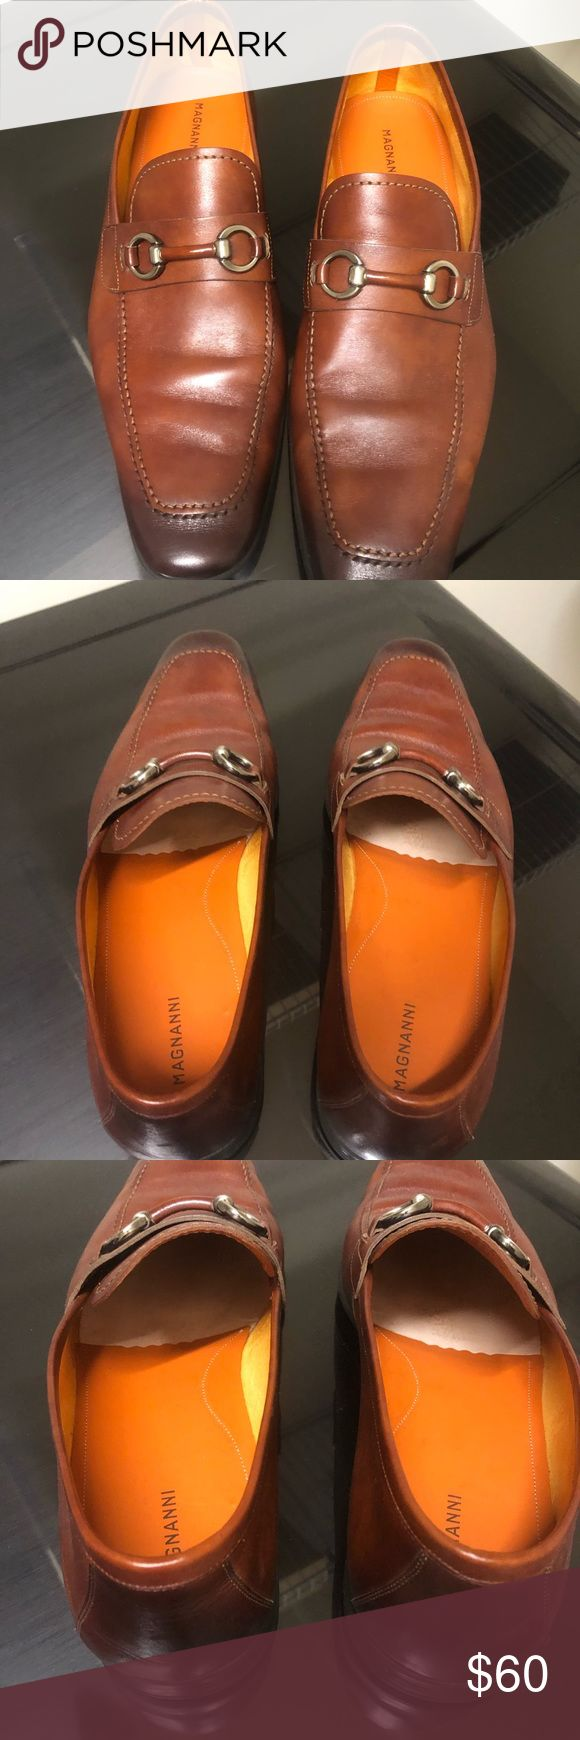 Men's Magnanni loafers Very gently used Men's Magnanni loafers.  Size 13. Ve...